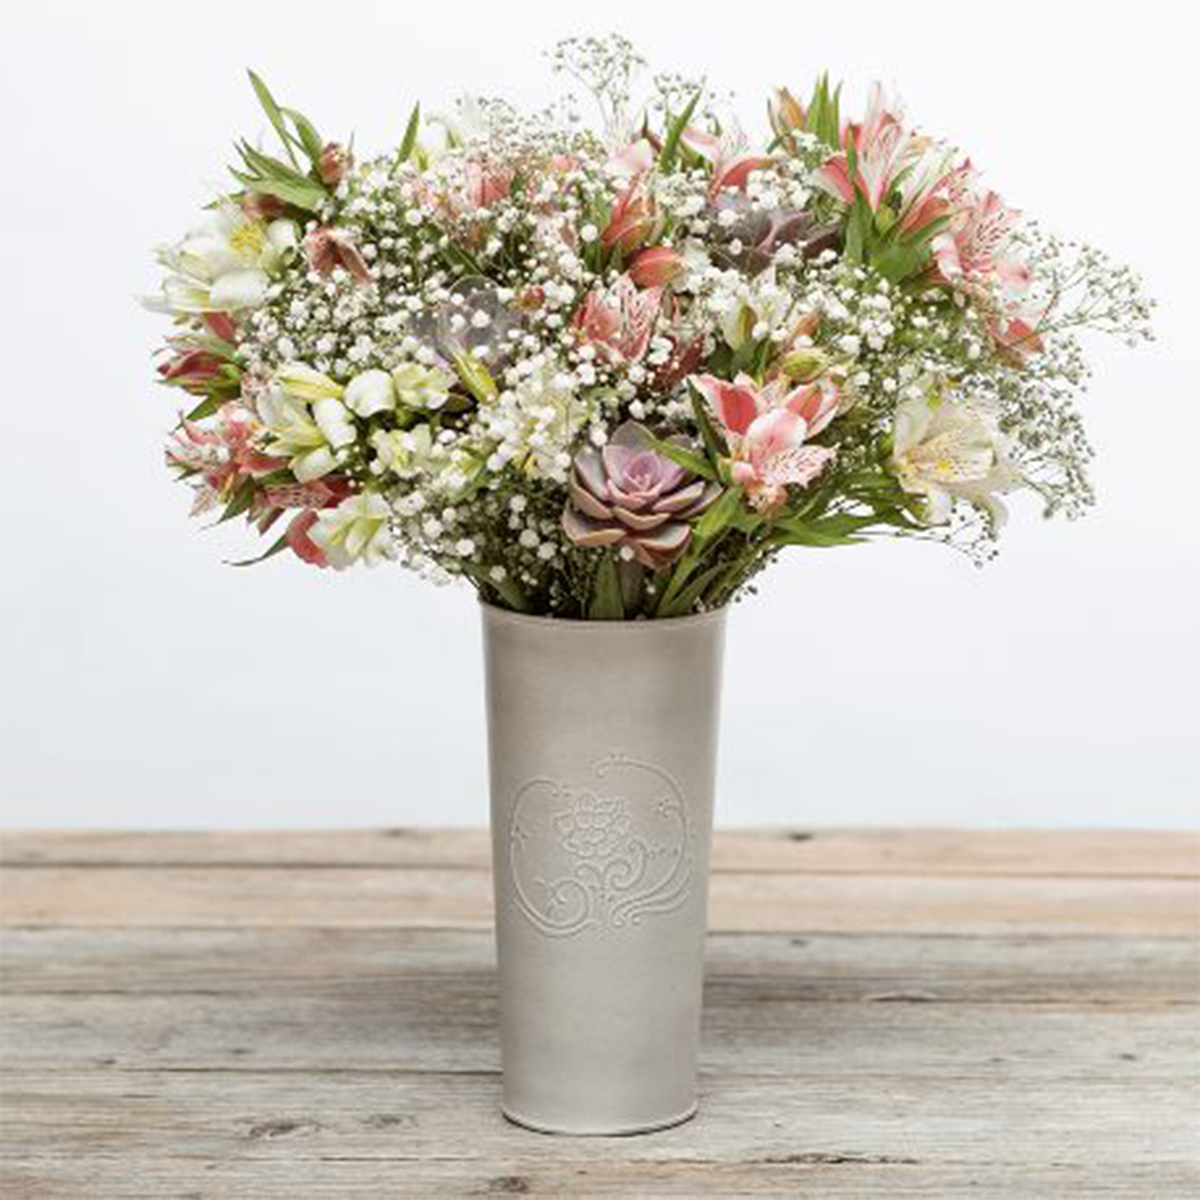 Tall vase filled with succulents, an alstroemeria, and other fresh flowers. photo